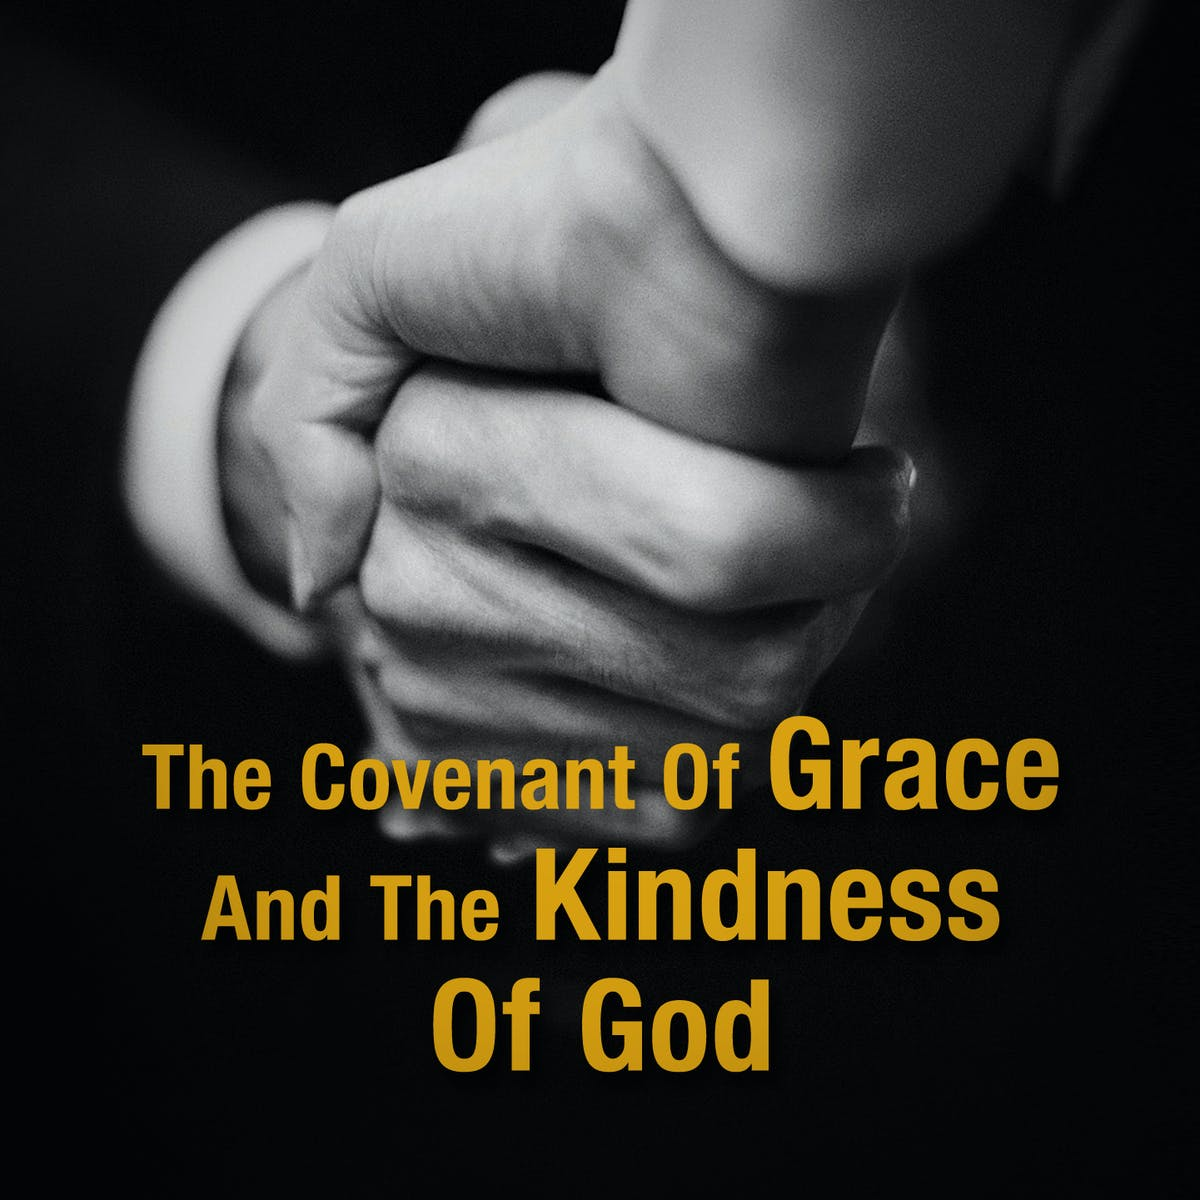 The Covenant Of Grace And The Kindness Of God